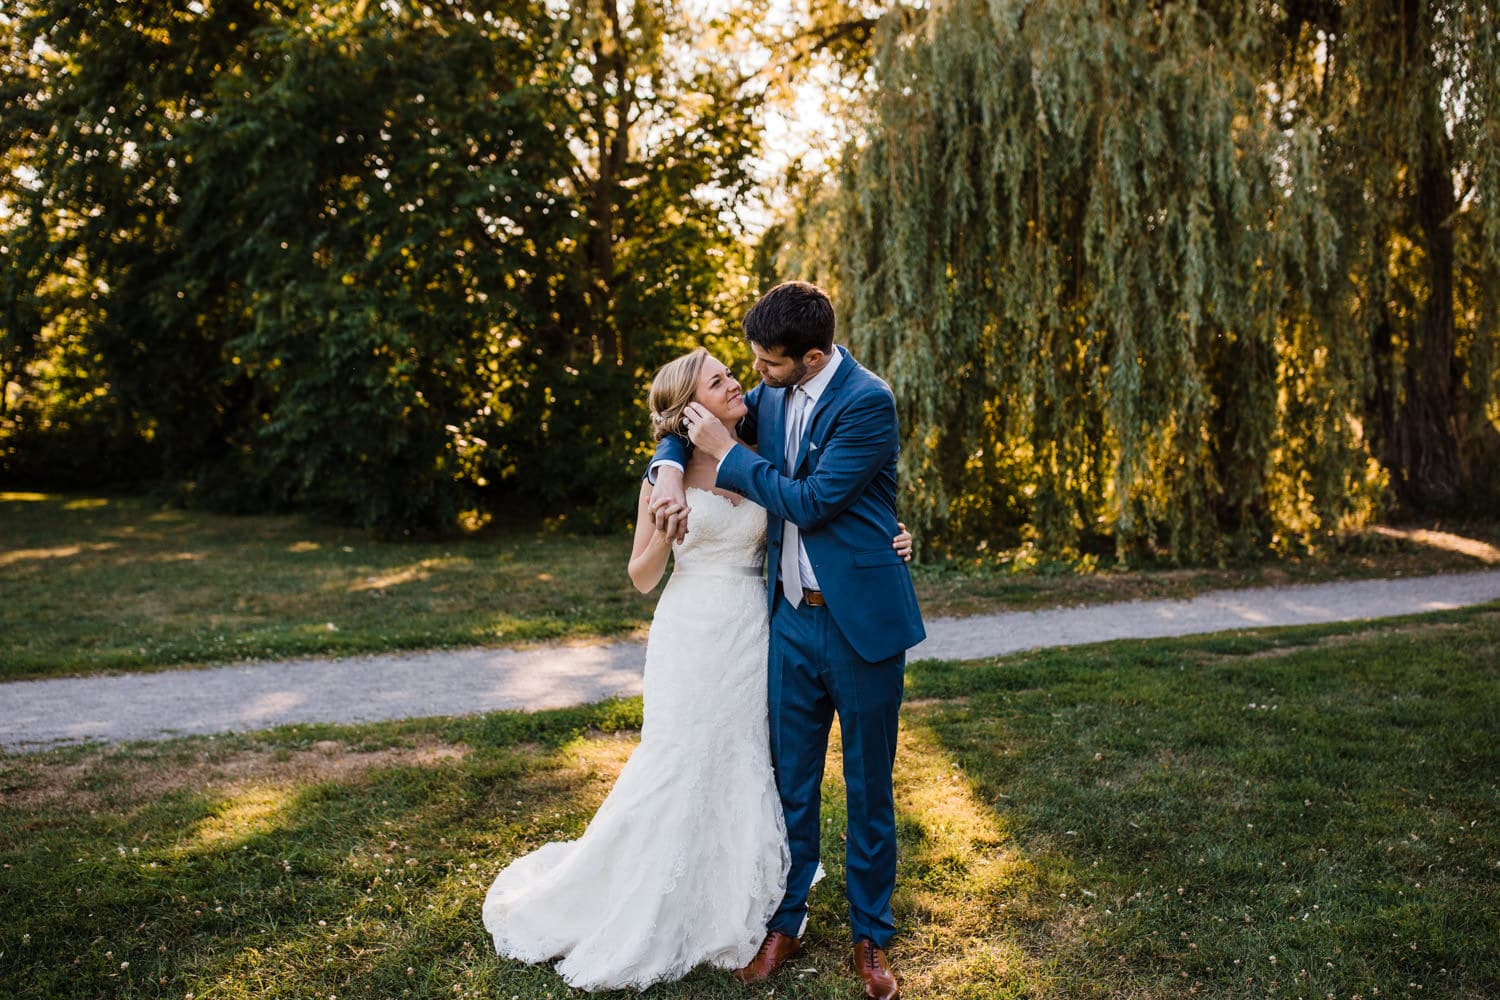 bride and groom embrace by willow tree - glebe community centre wedding